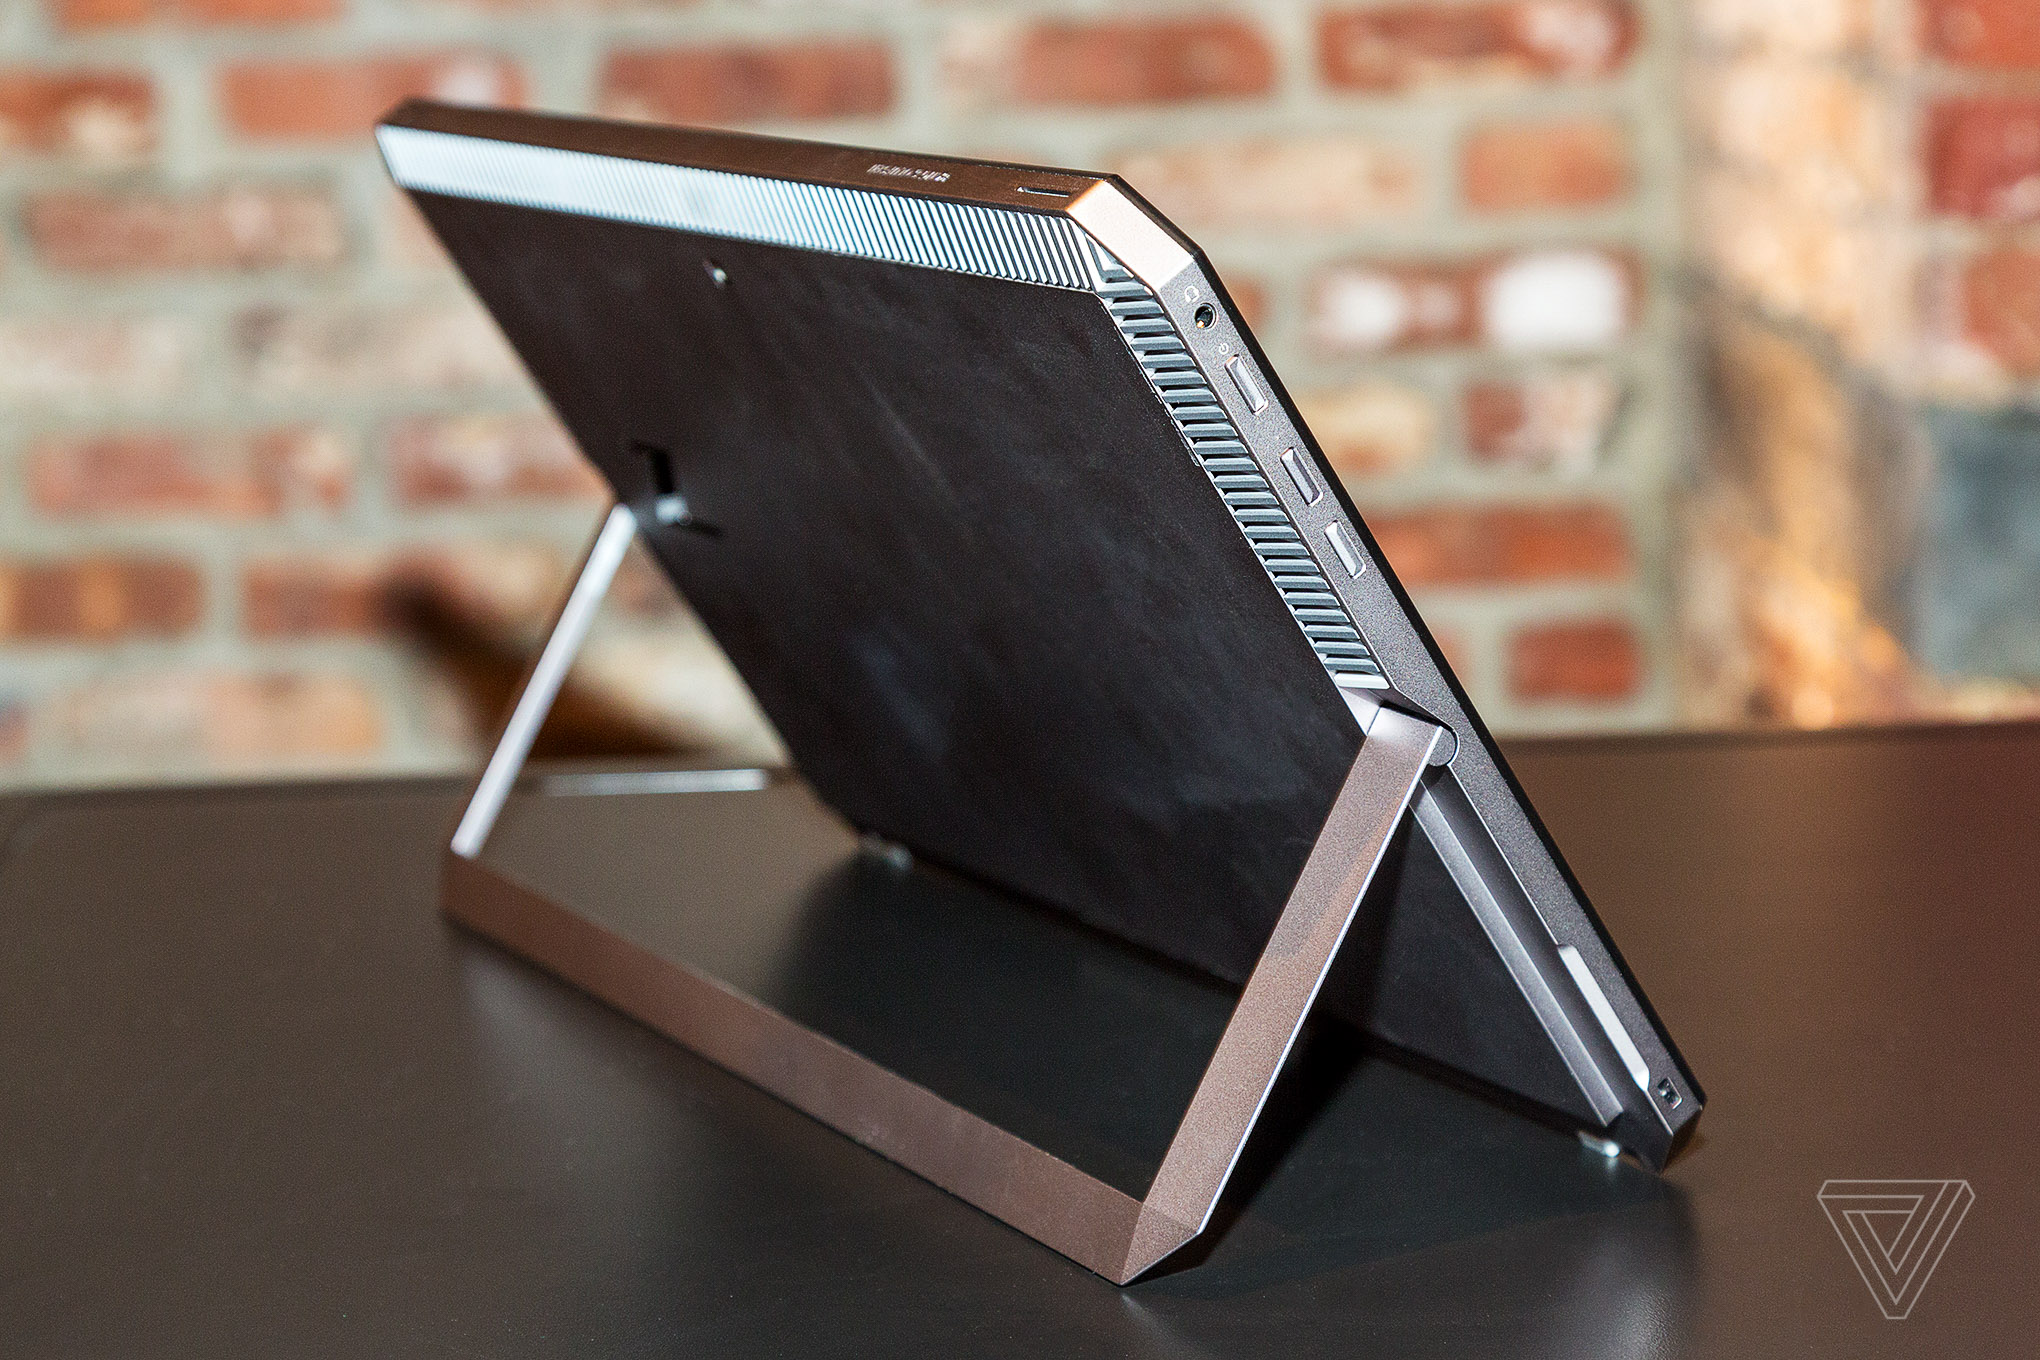 HP launches 'world's most powerful detachable PC' for creative professionals